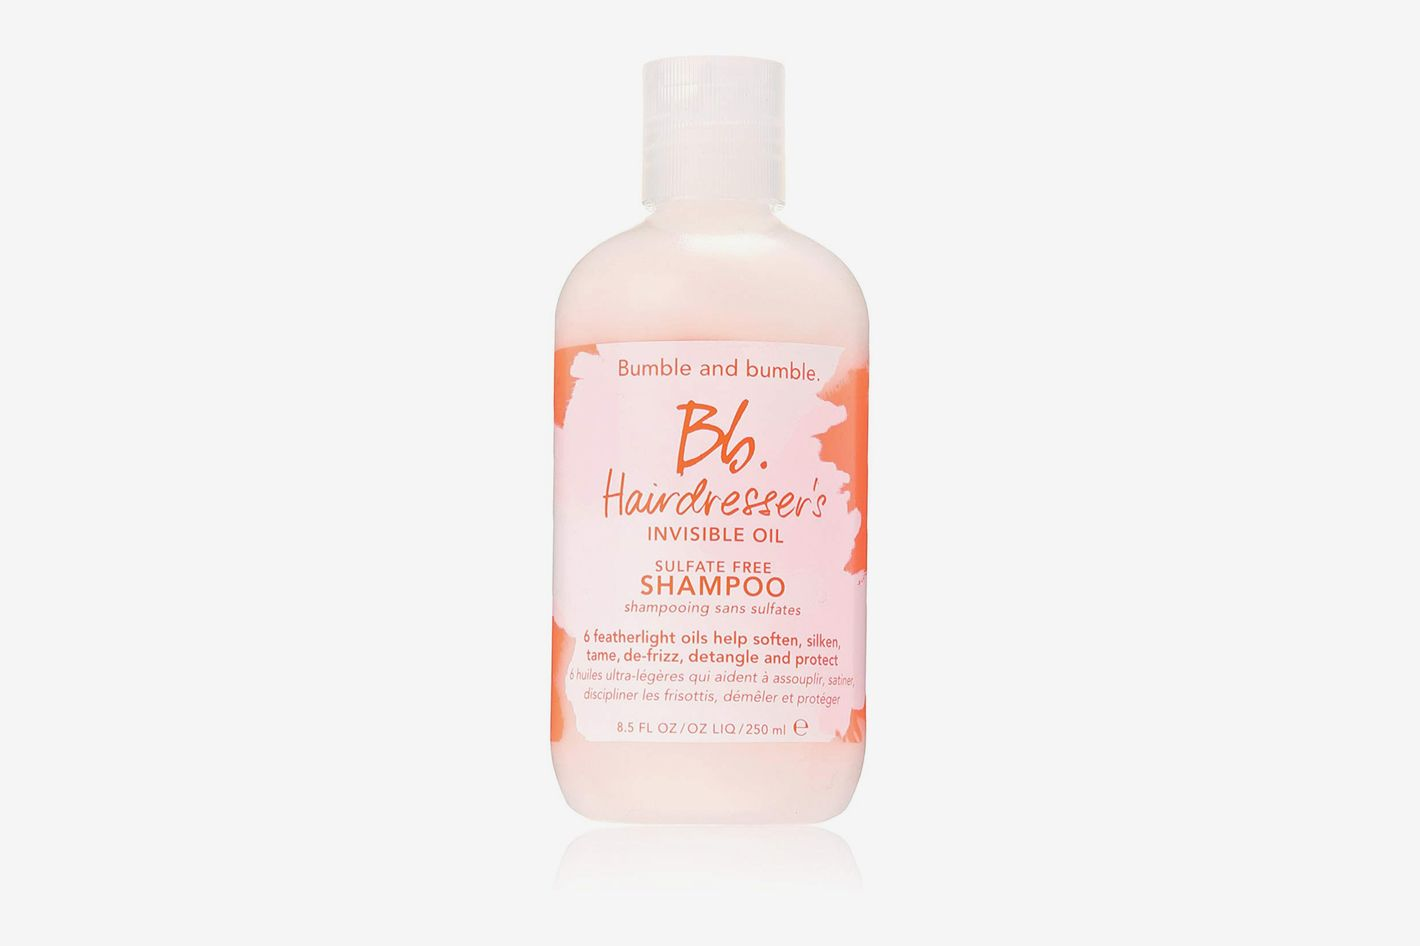 Bumble and Bumble Hairdresser's Invisible Oil Sulfate-Free Shampoo